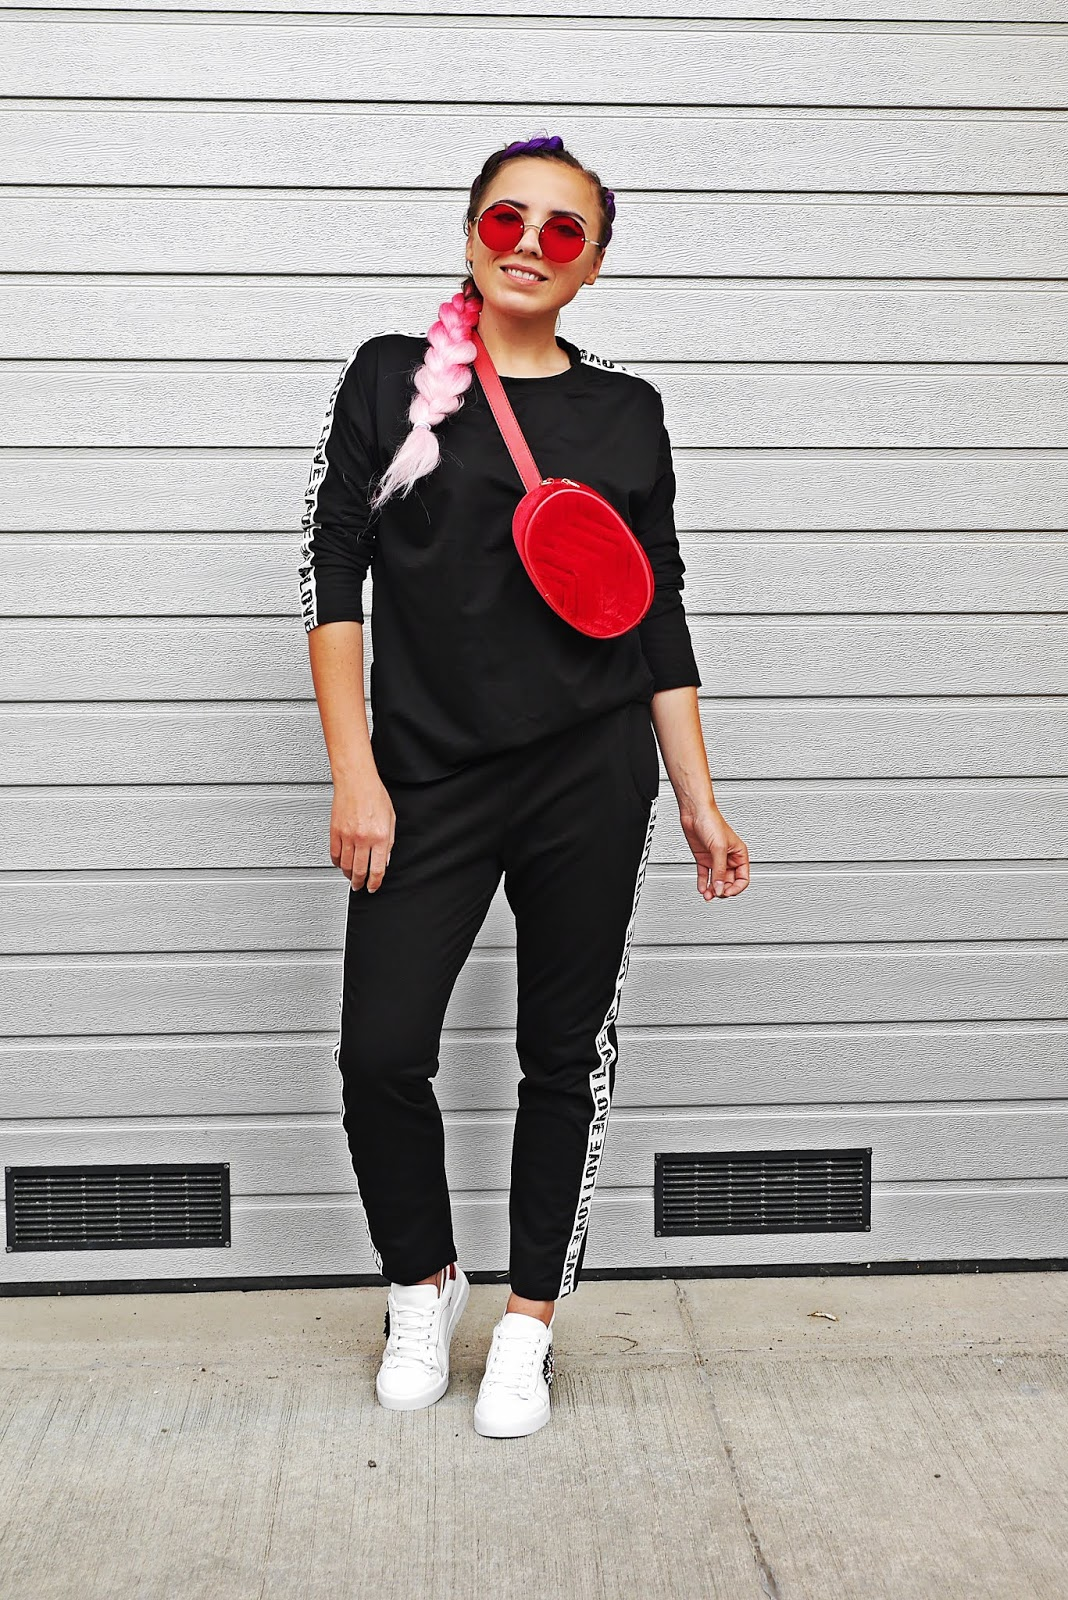 red bag sportychick style pants ombre braids hair karyn fashion blogger